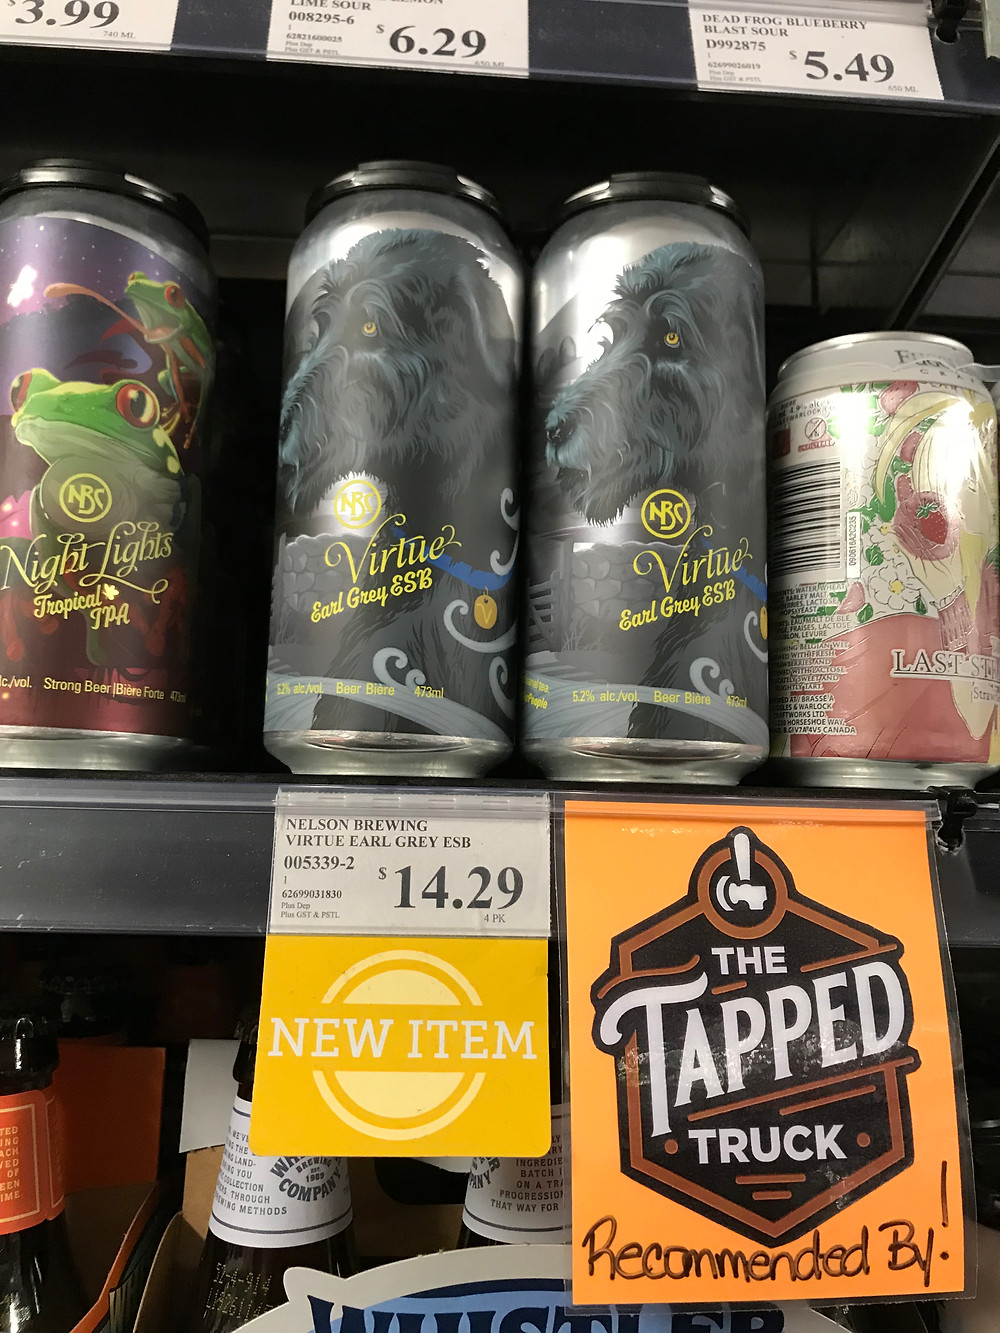 the tapped truck a mobile bartender recommends local nelson brewing craft beer